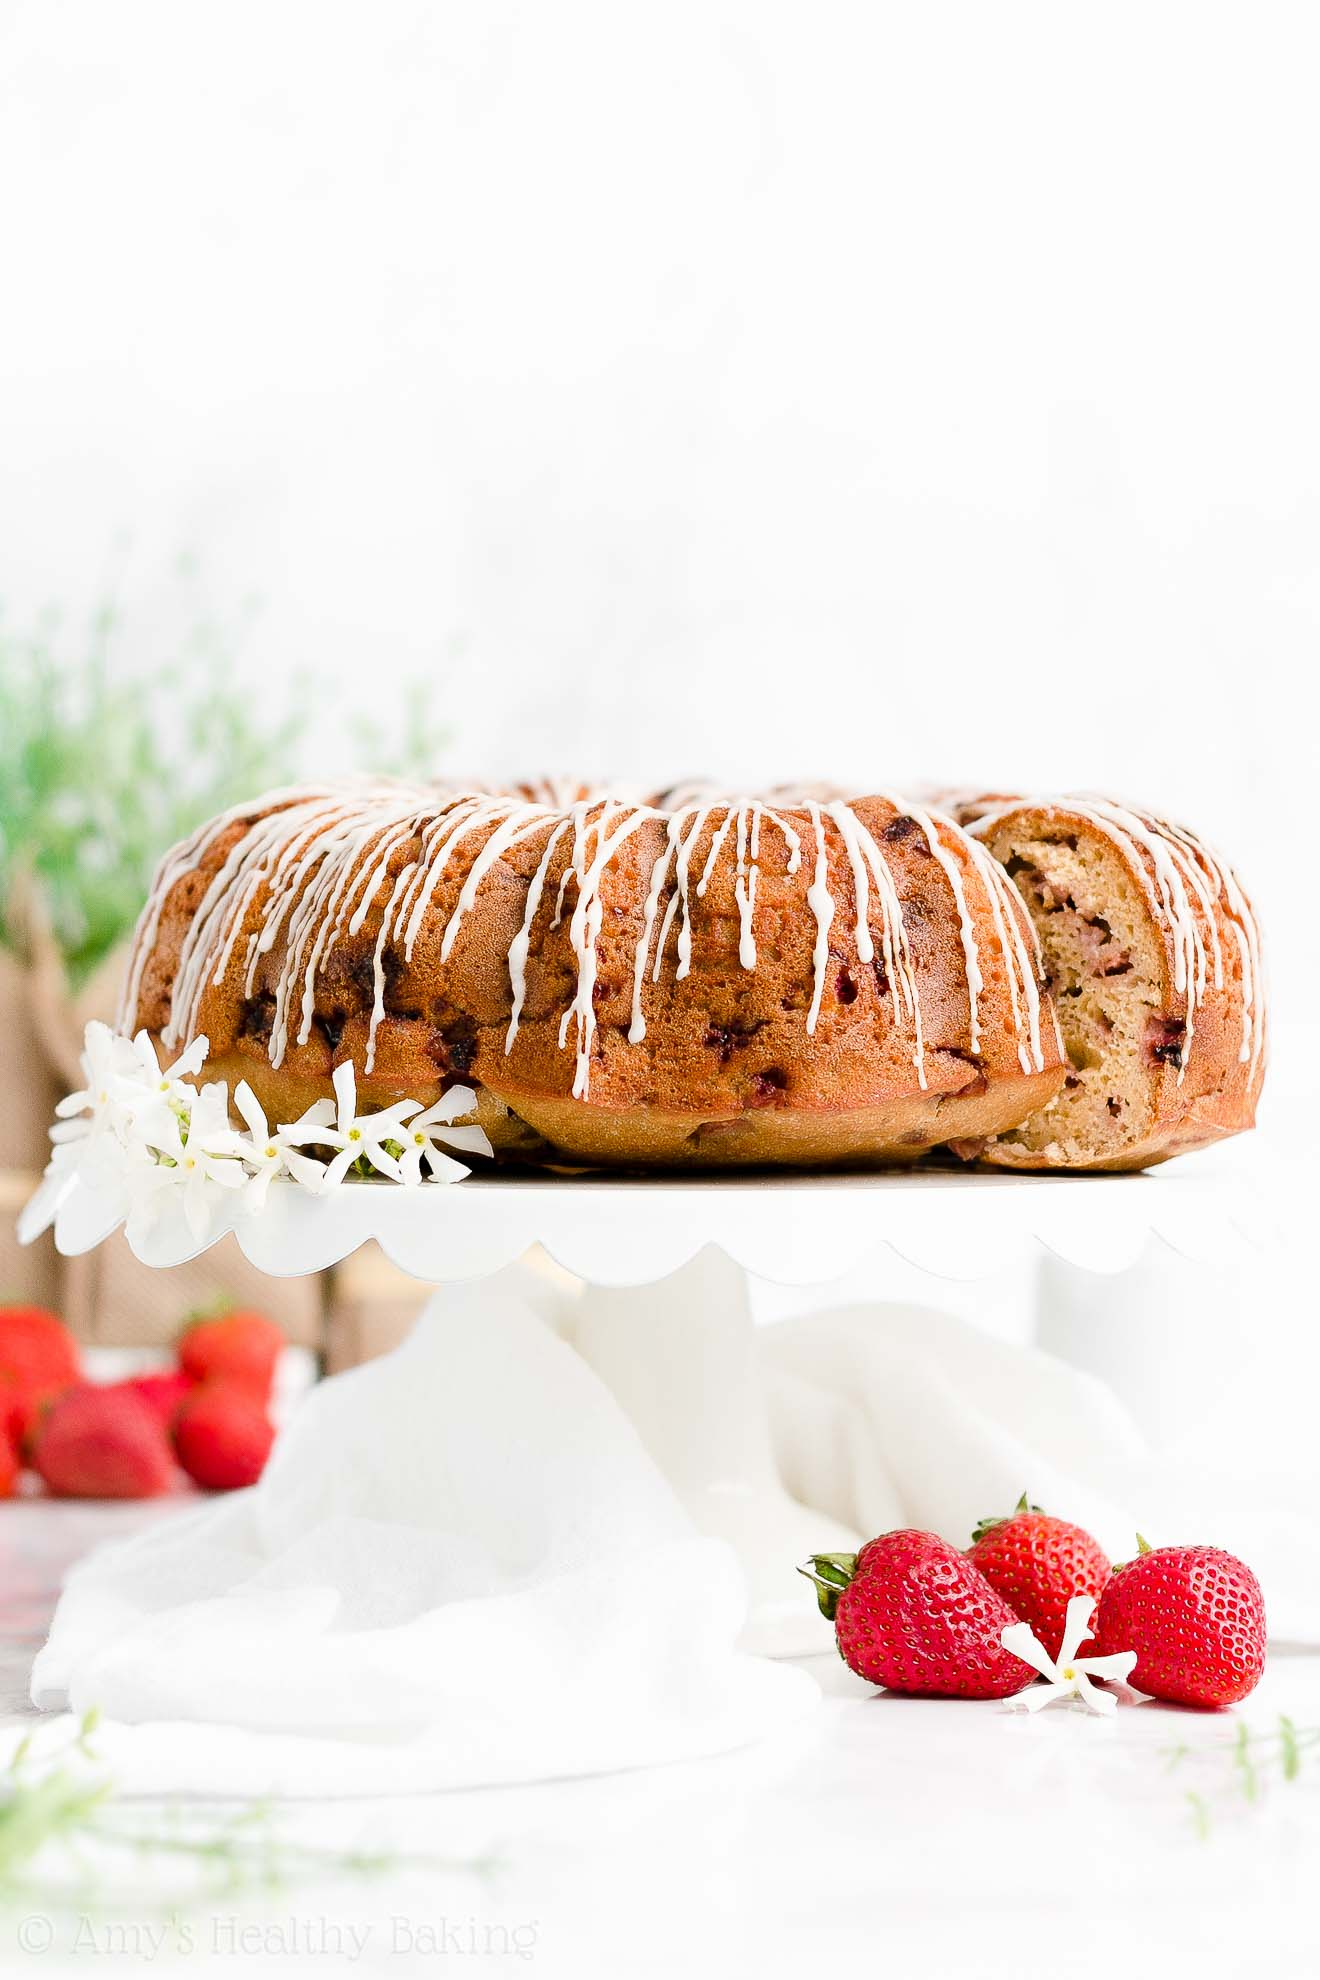 Best Easy Healthy Whole Wheat Greek Yogurt Fresh Strawberry Bundt Cake